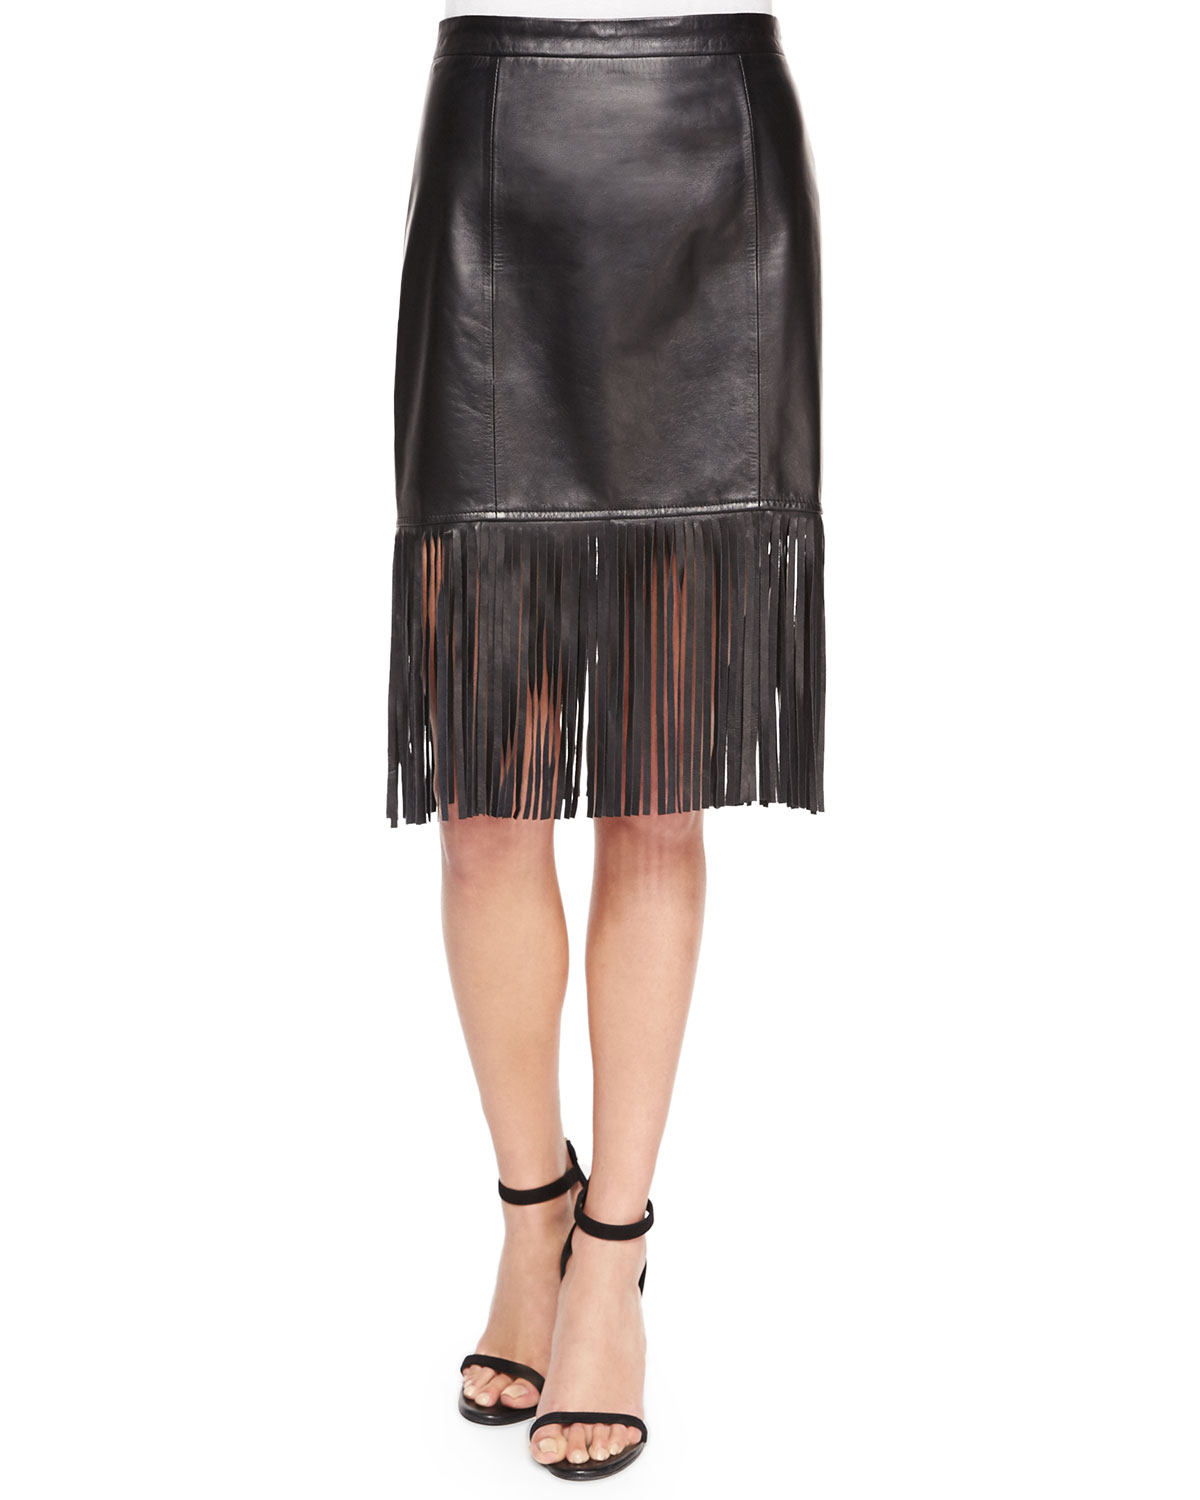 Fringe-Hem Leather Pencil Skirt, Size: SMALL, Black - Cusp by Neiman Marcus